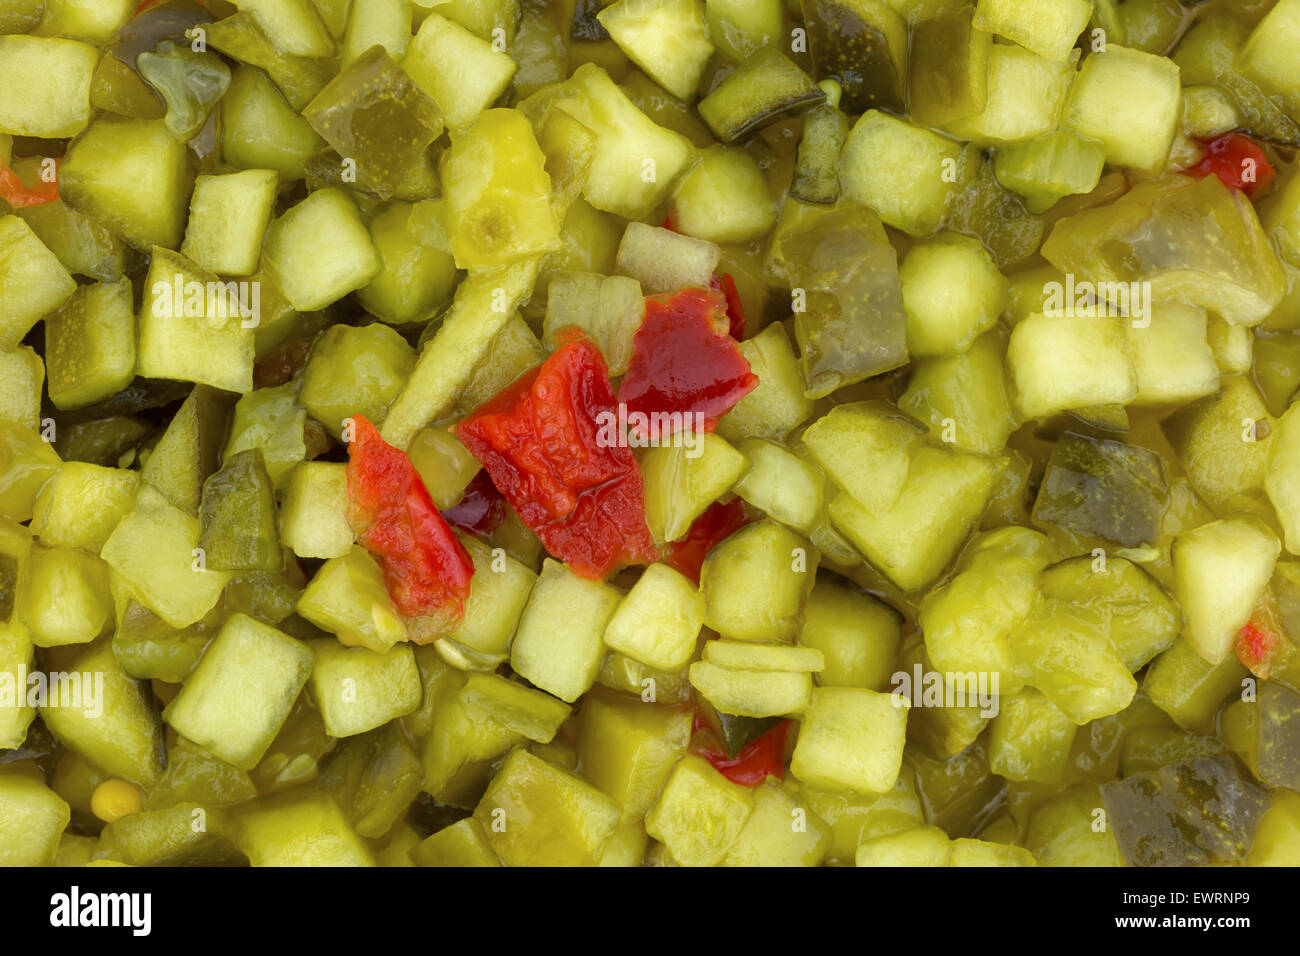 A close view of delicatessen style sweet relish. - Stock Image